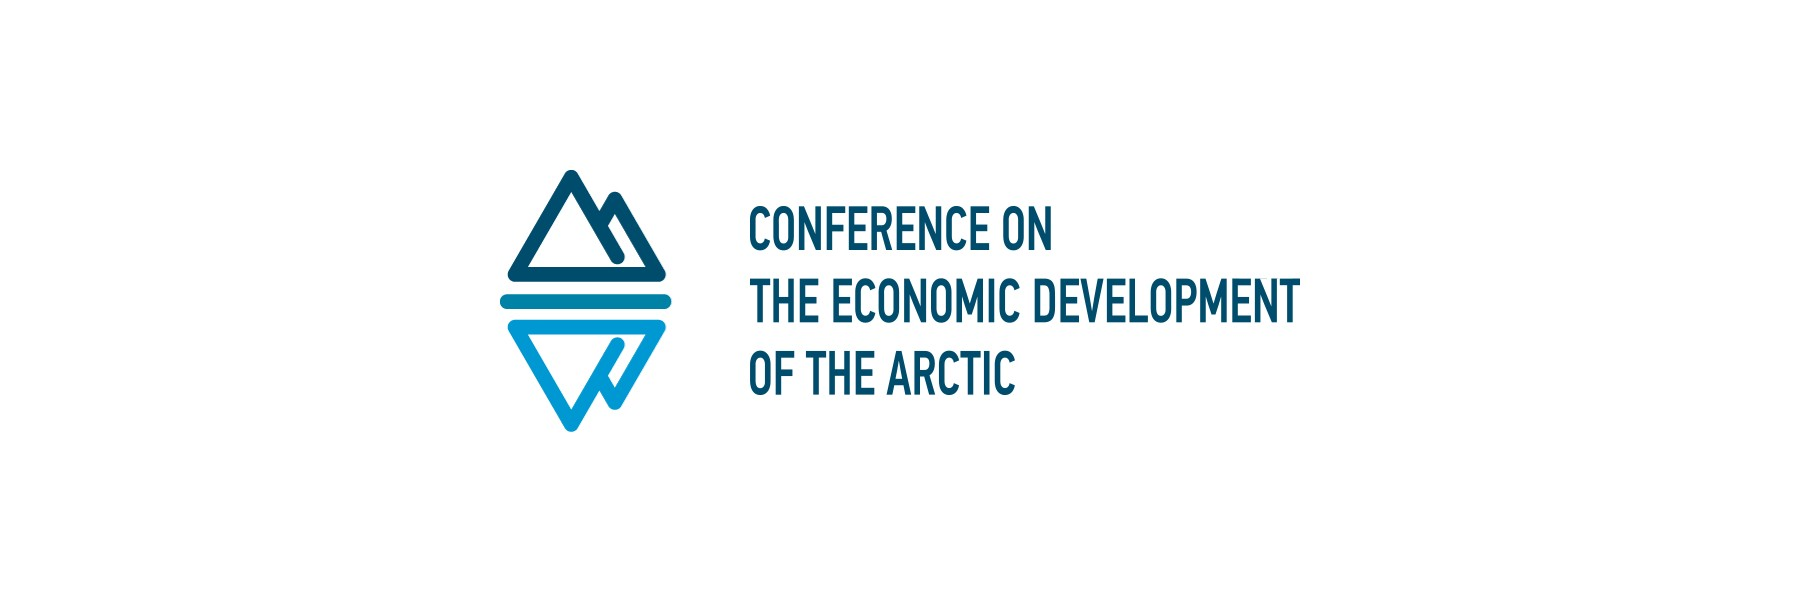 1st Conference on the economic development of the Arctic (within the framework of the SPIEF 2016)